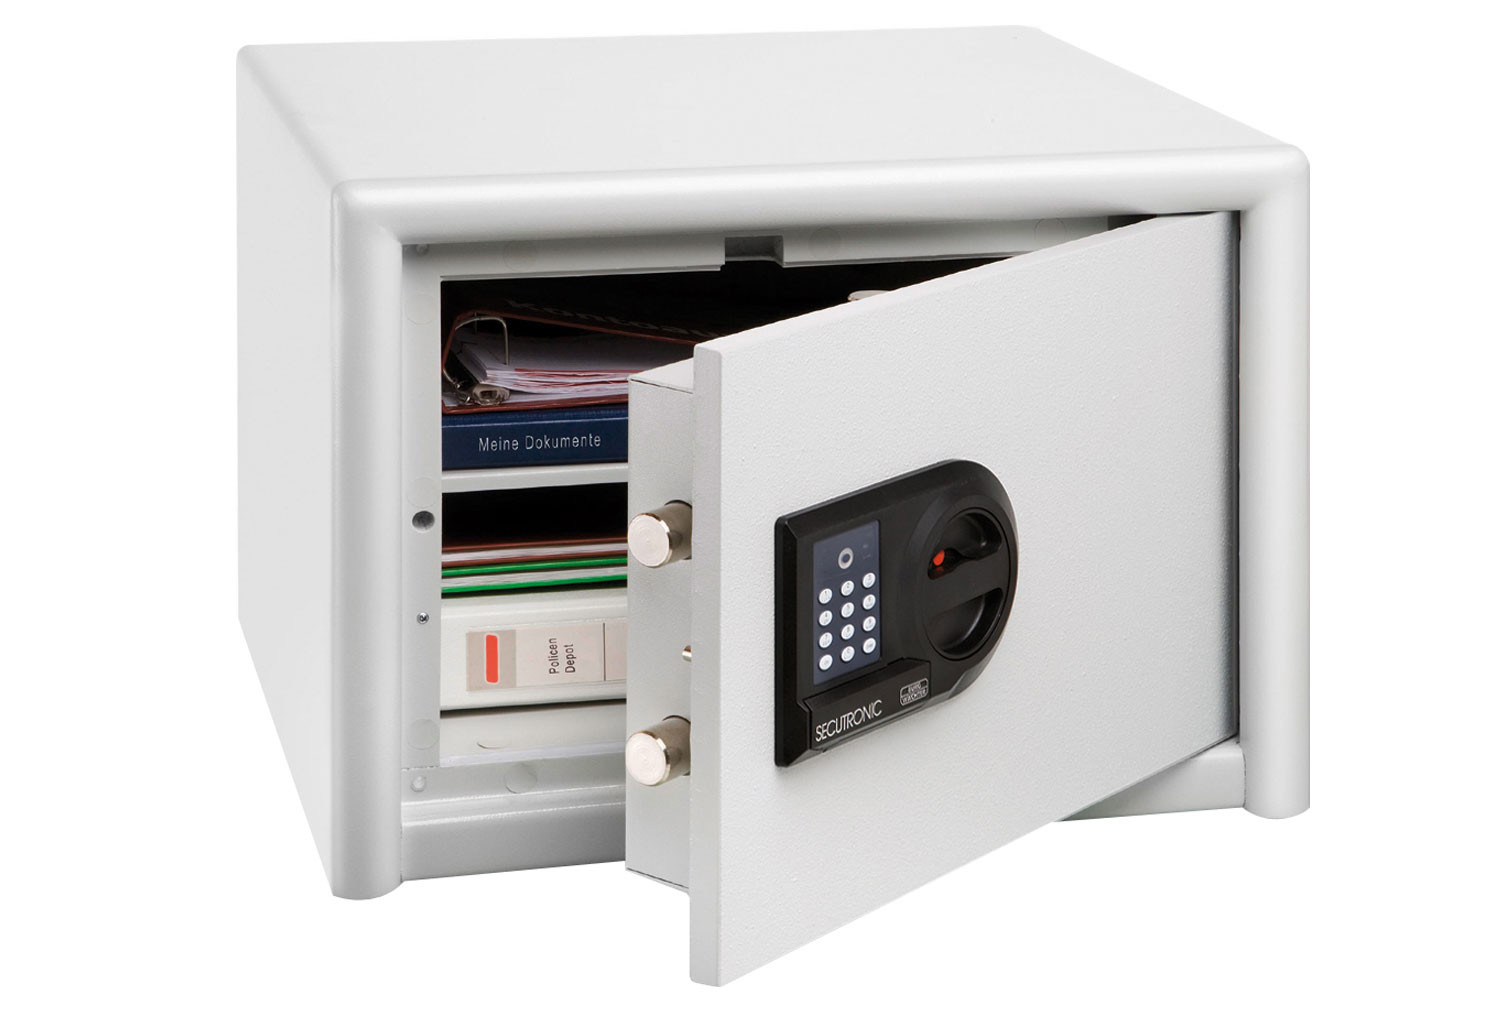 Burg Wachter Combiline CL 20 E Home Safe With Electronic Lock (27ltrs)